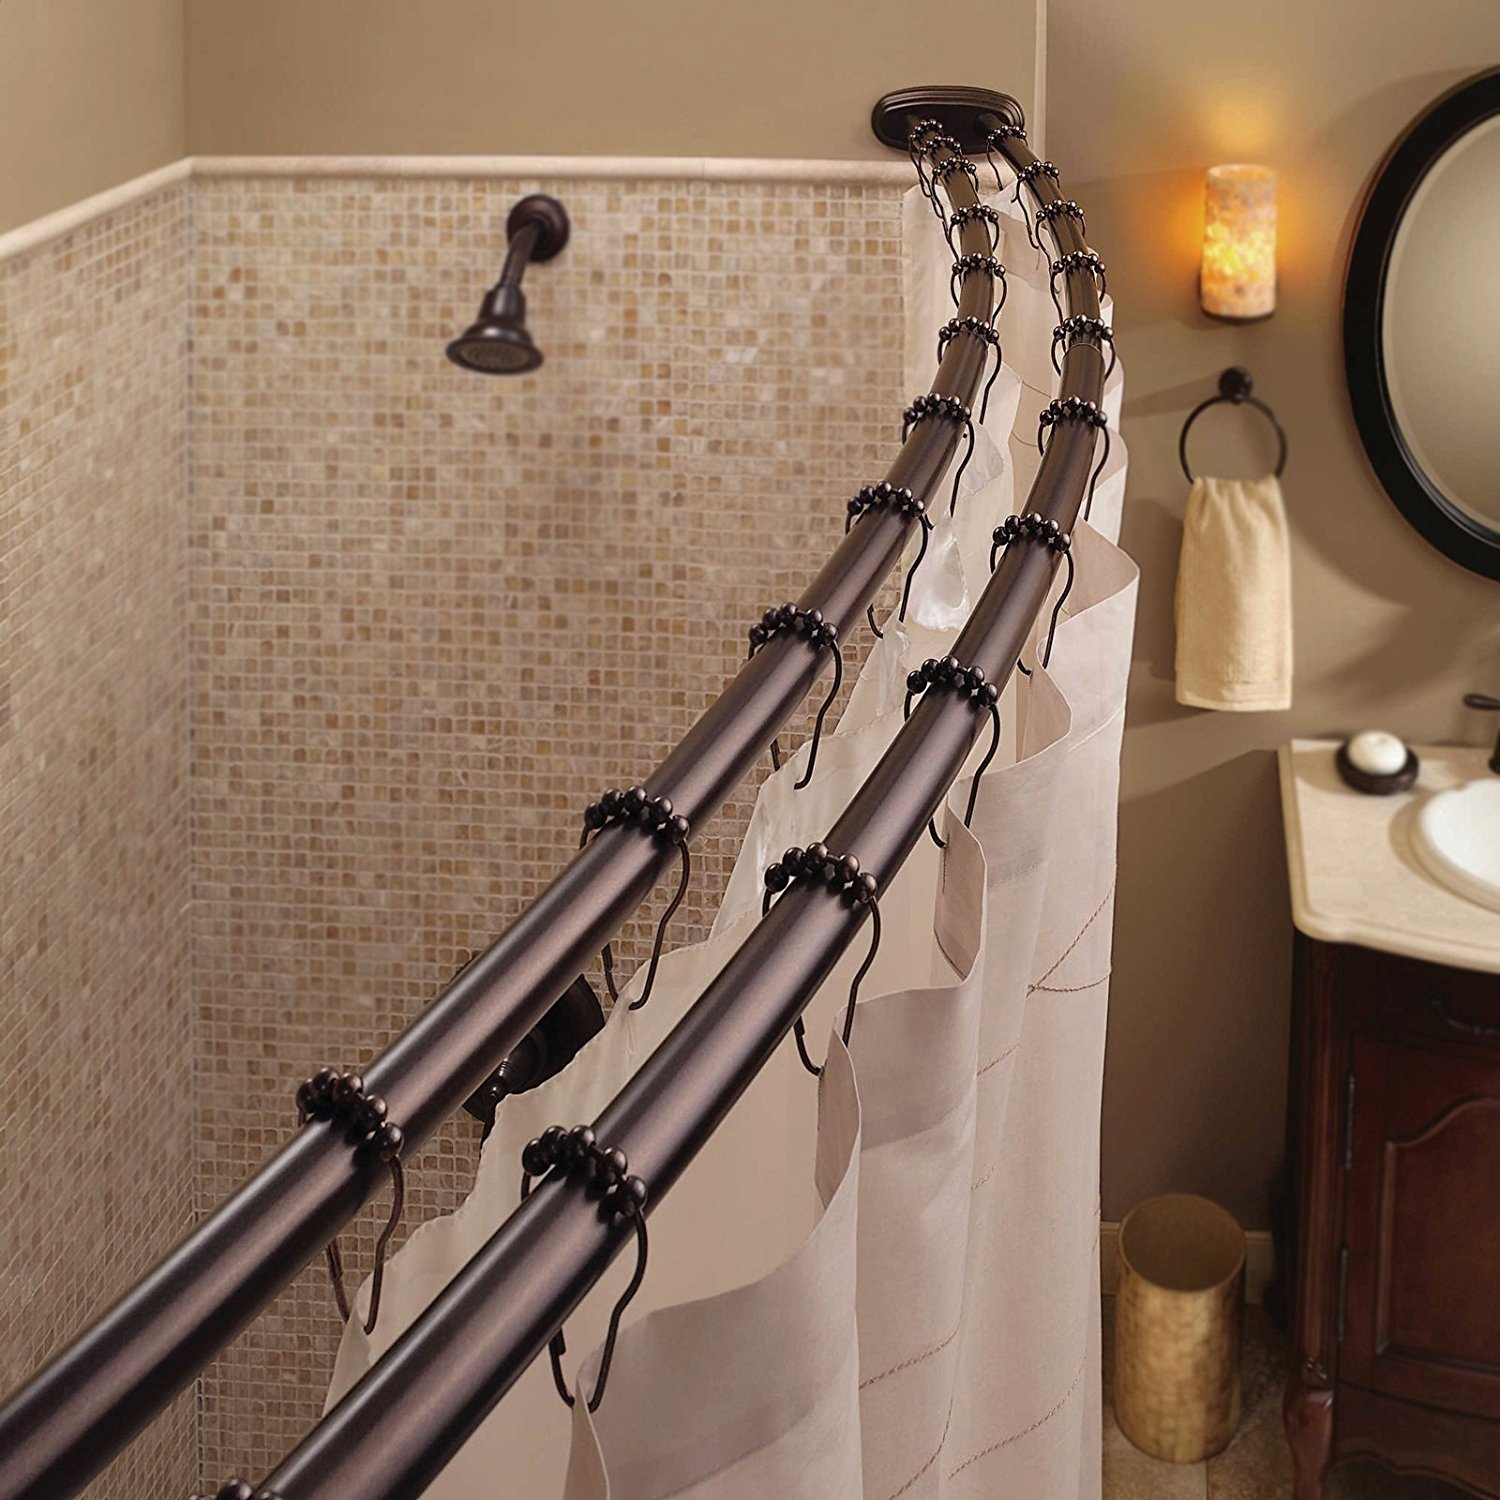 Exciting Bathroom Decor Ideas with Shower Curtain Tension Rod: Shower Stall Curtain Rods | Shower Curtain Pole Holder | Shower Curtain Tension Rod